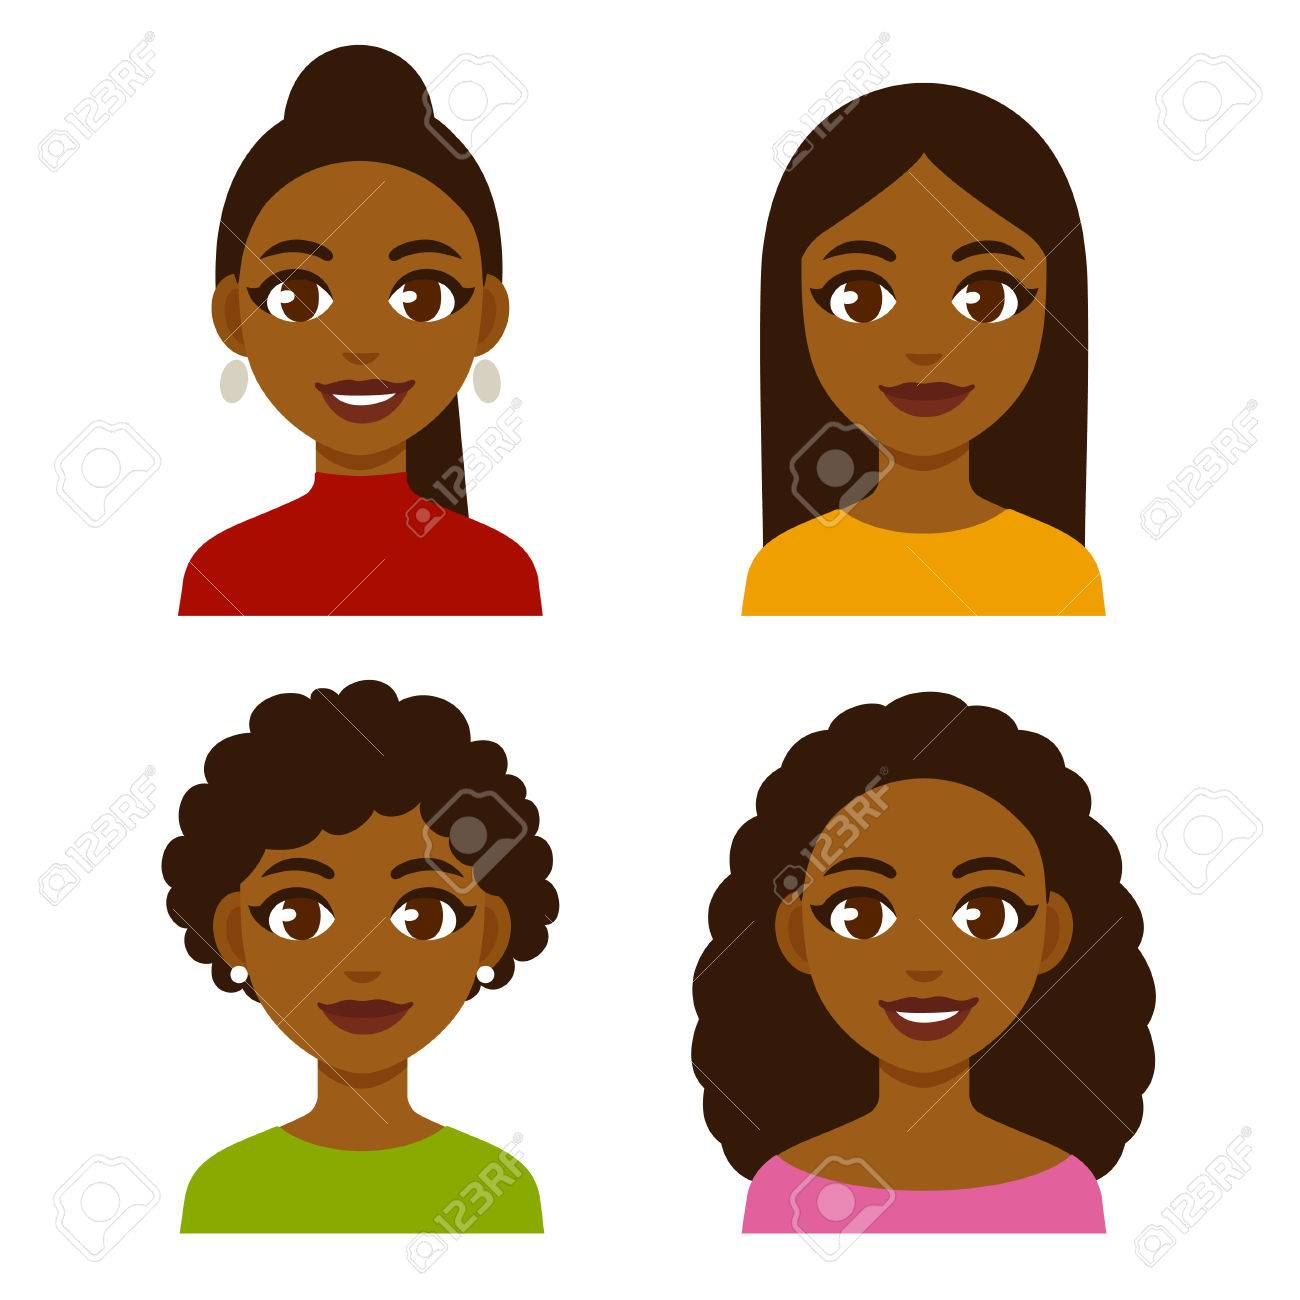 Cute Cartoon Black Girls With Natural Hairstyles And Straightened